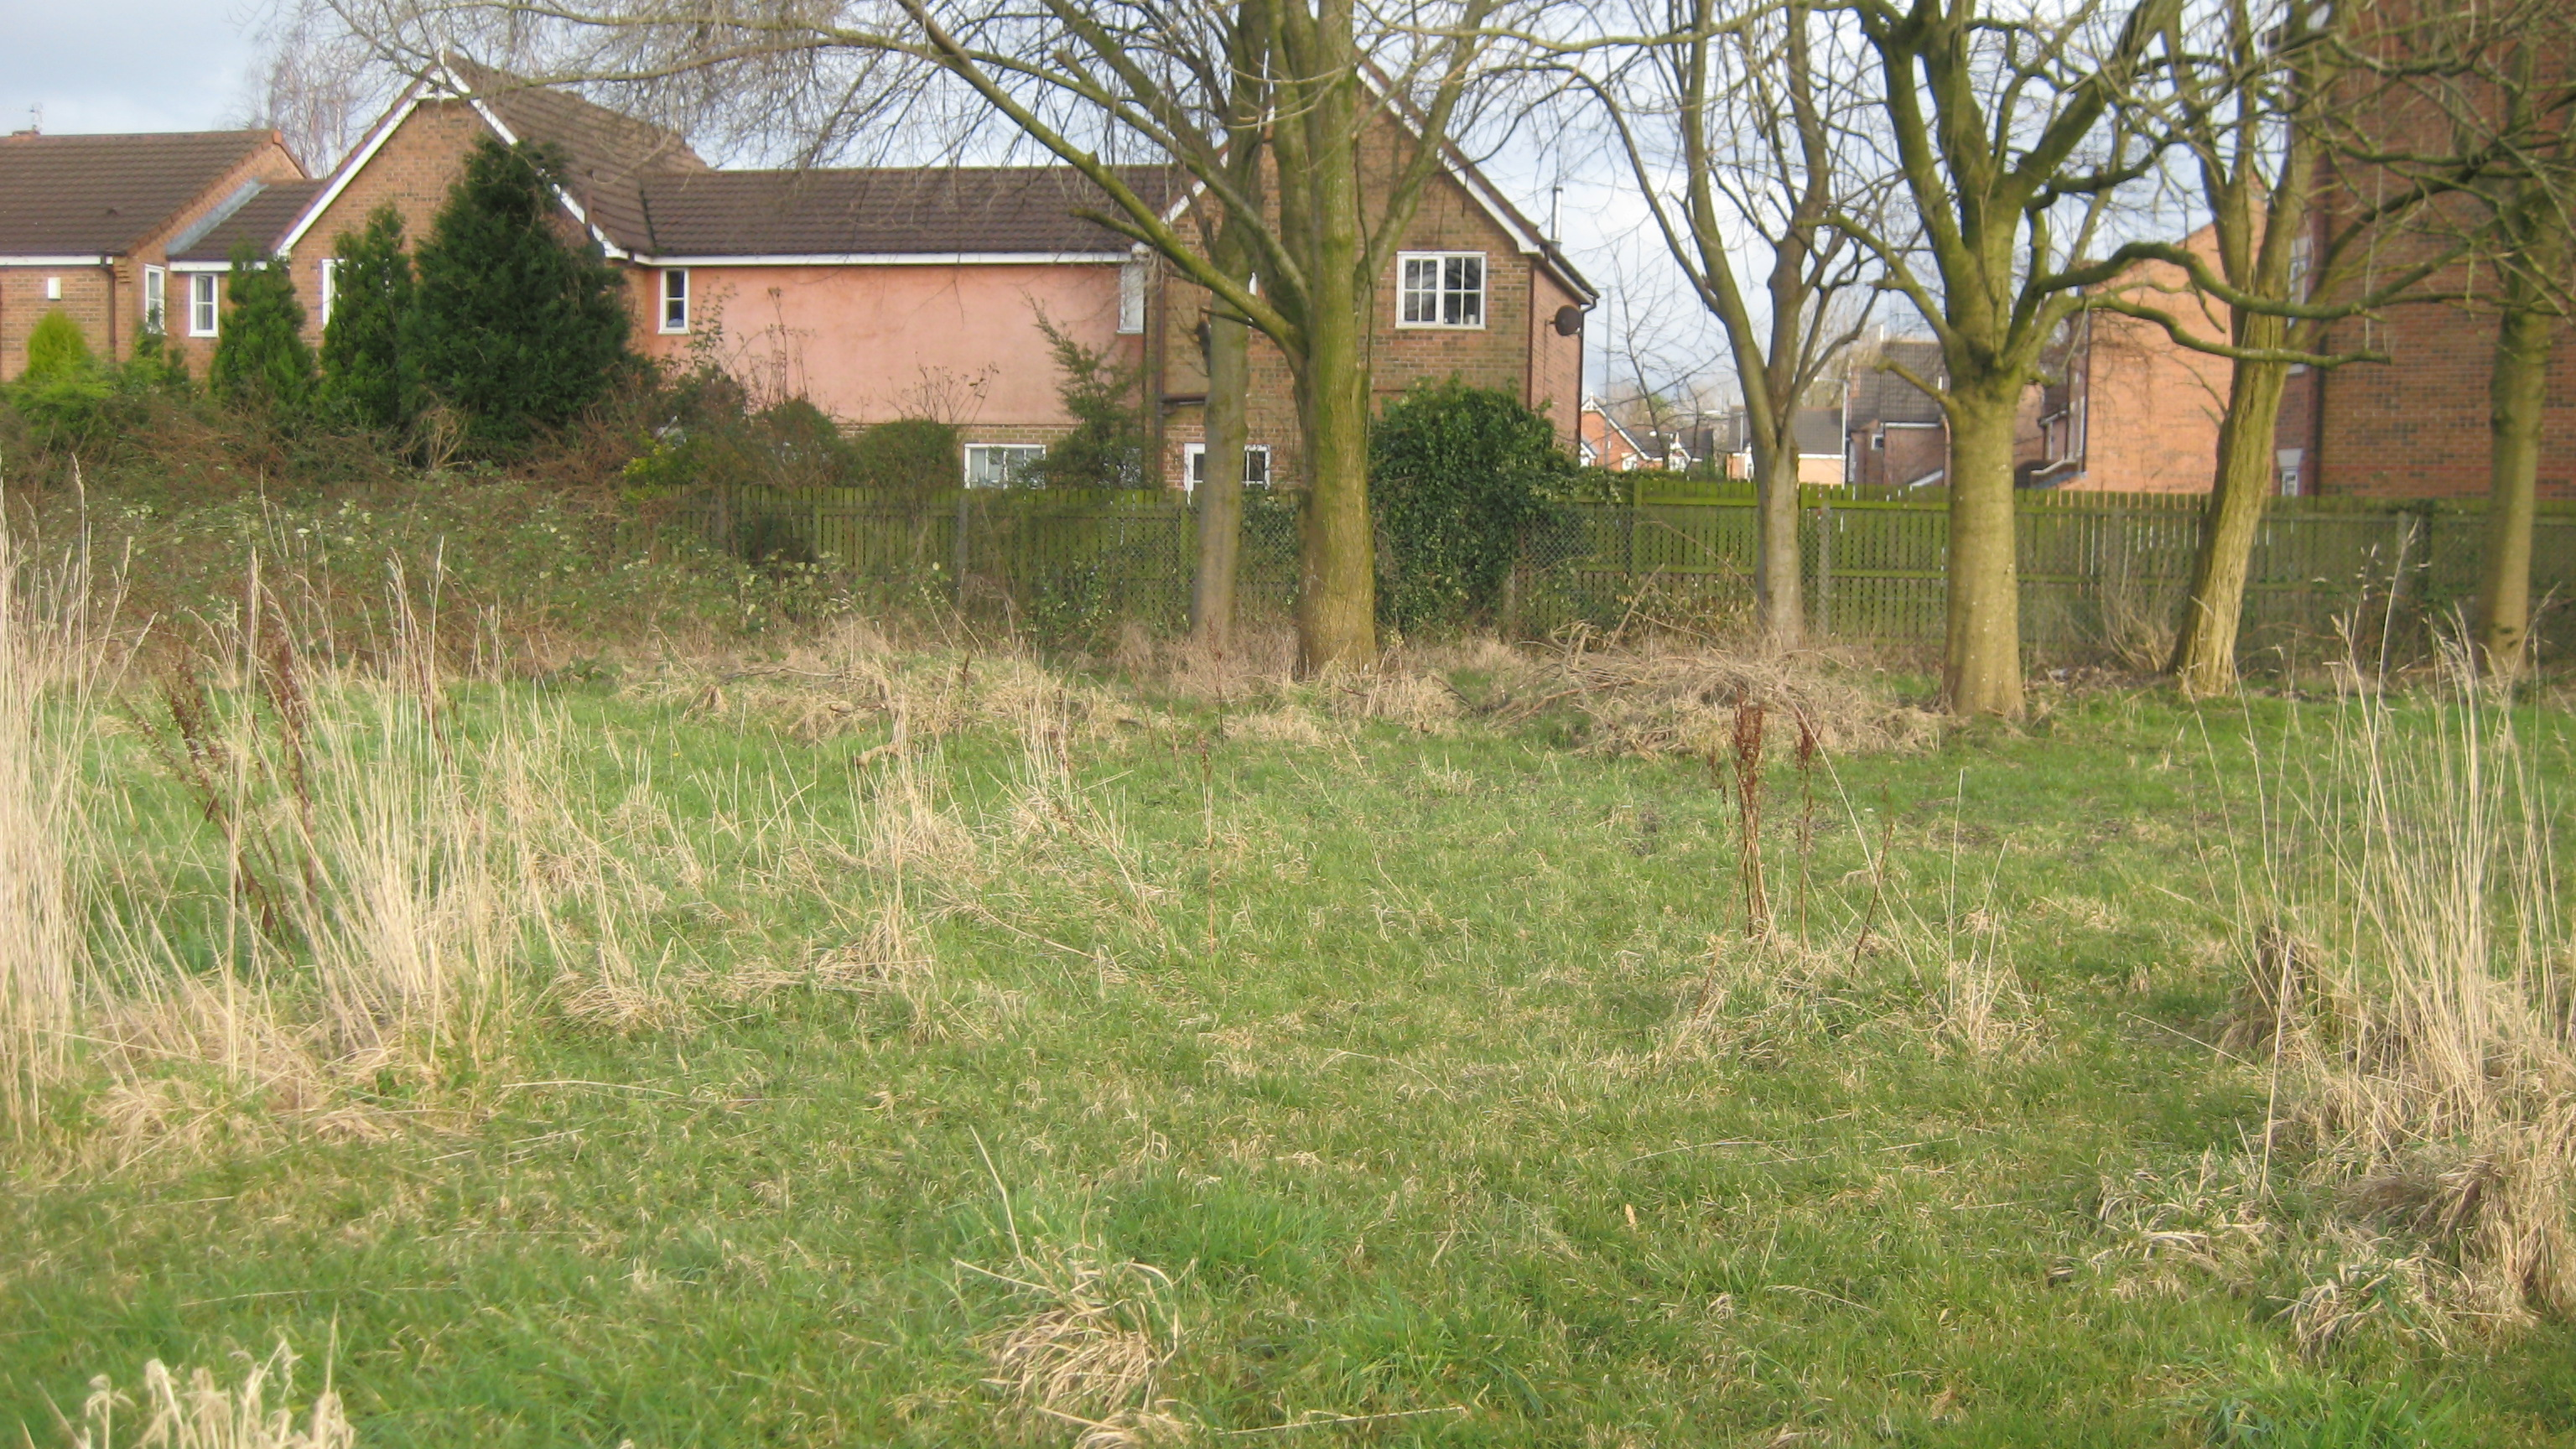 A view of the housing estate that is built on the old St Anne's playing fields. The grassy area may have been part of the fields